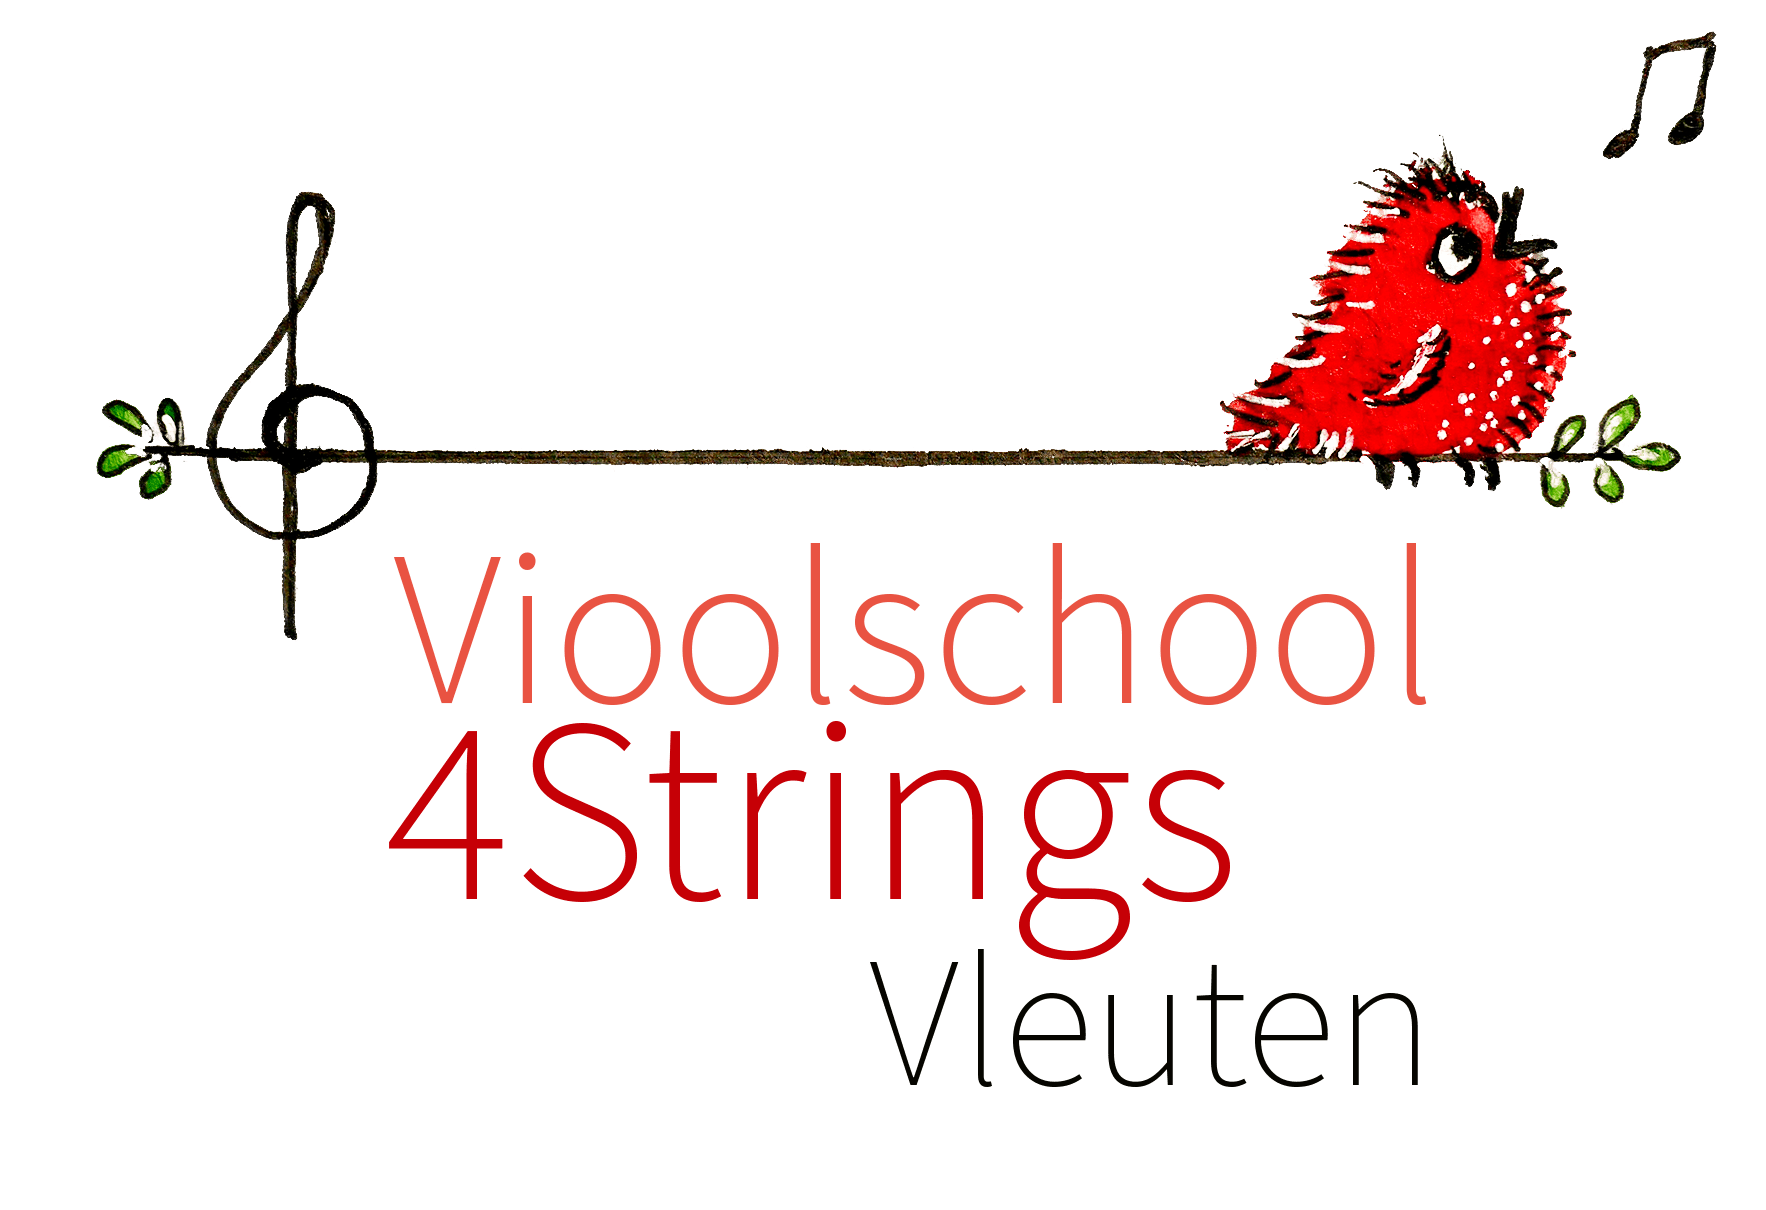 Vioolschool 4Strings